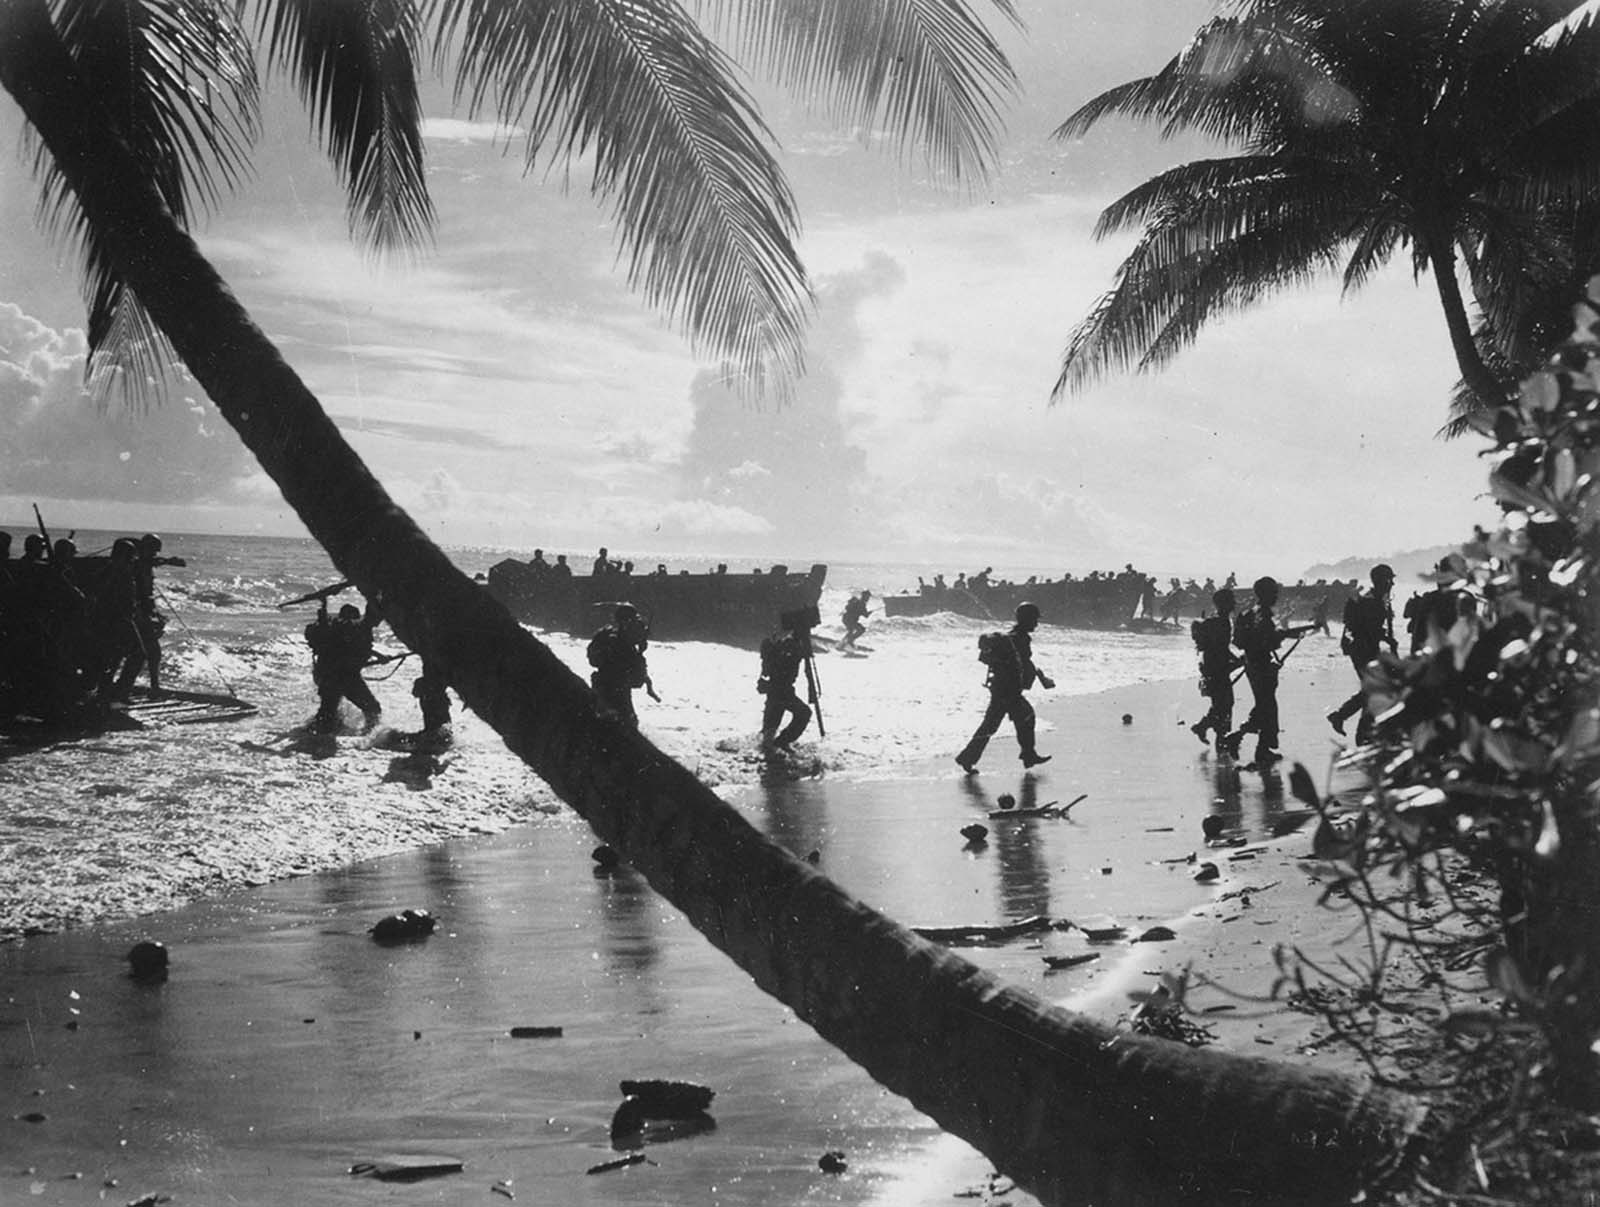 U.S. troops from the 160th Infantry Regiment are seen as they disembark from a landing craft during amphibious training on Guadalcanal, Solomon Islands, in August of 1942.